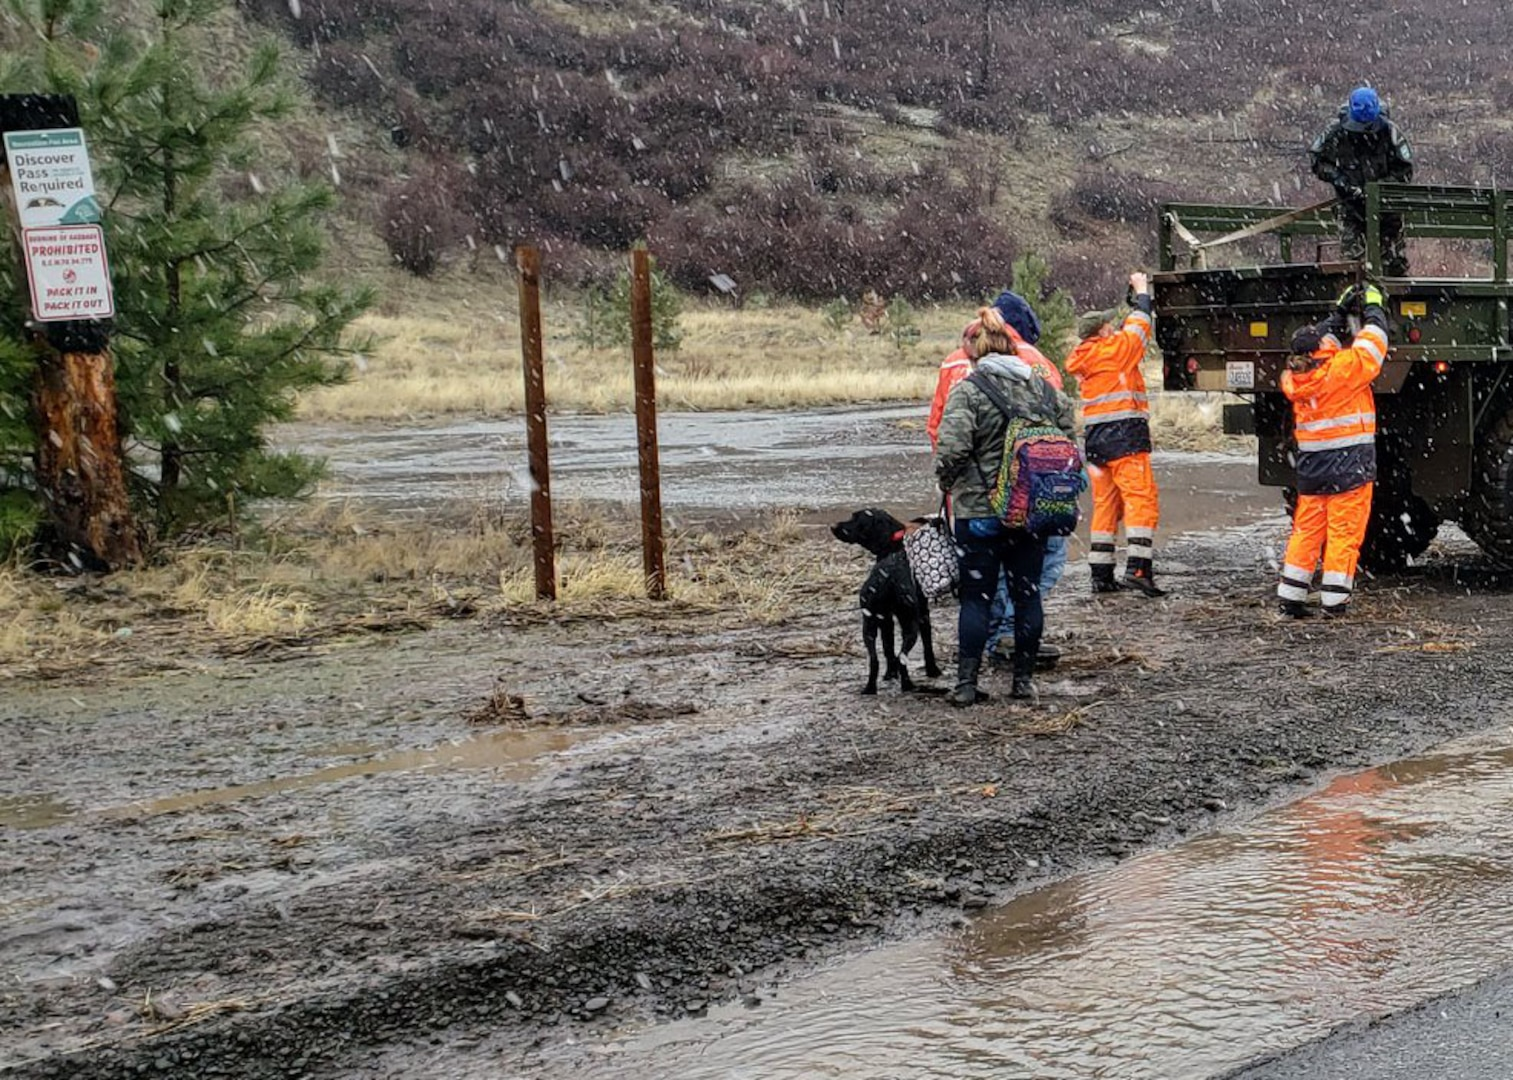 People and dogs make there way to a military cargo truck with flood waters near by.